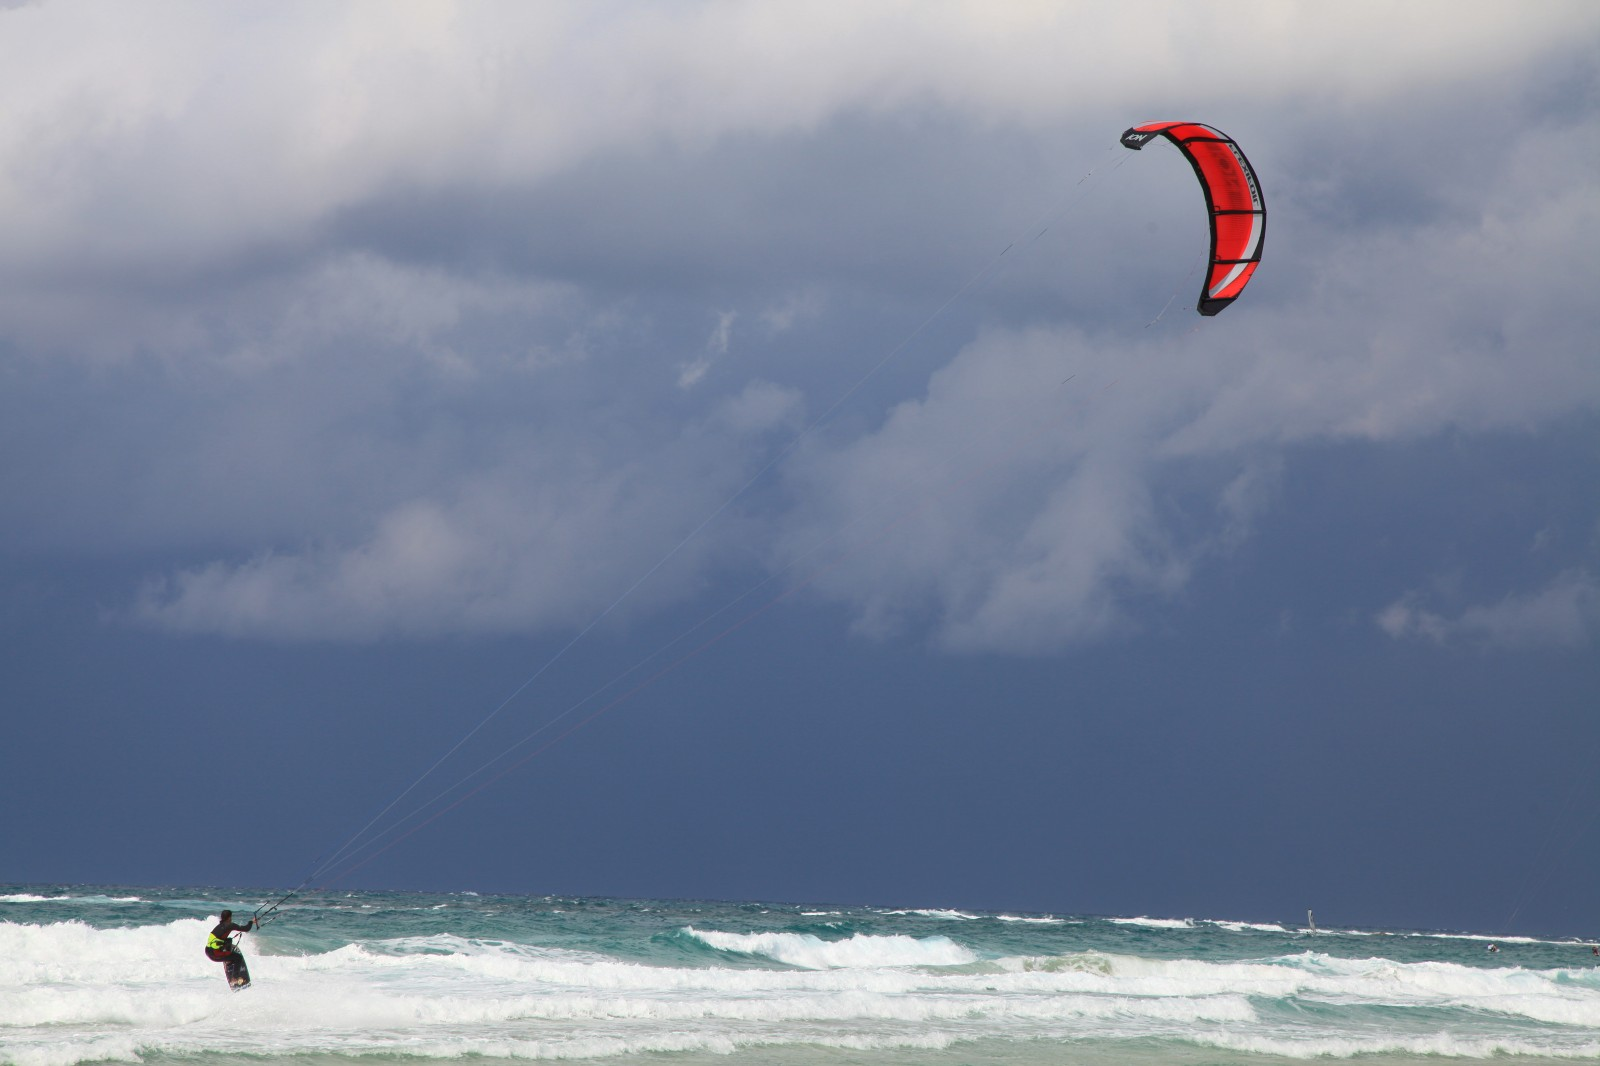 Caesarea beach is popular with kiters